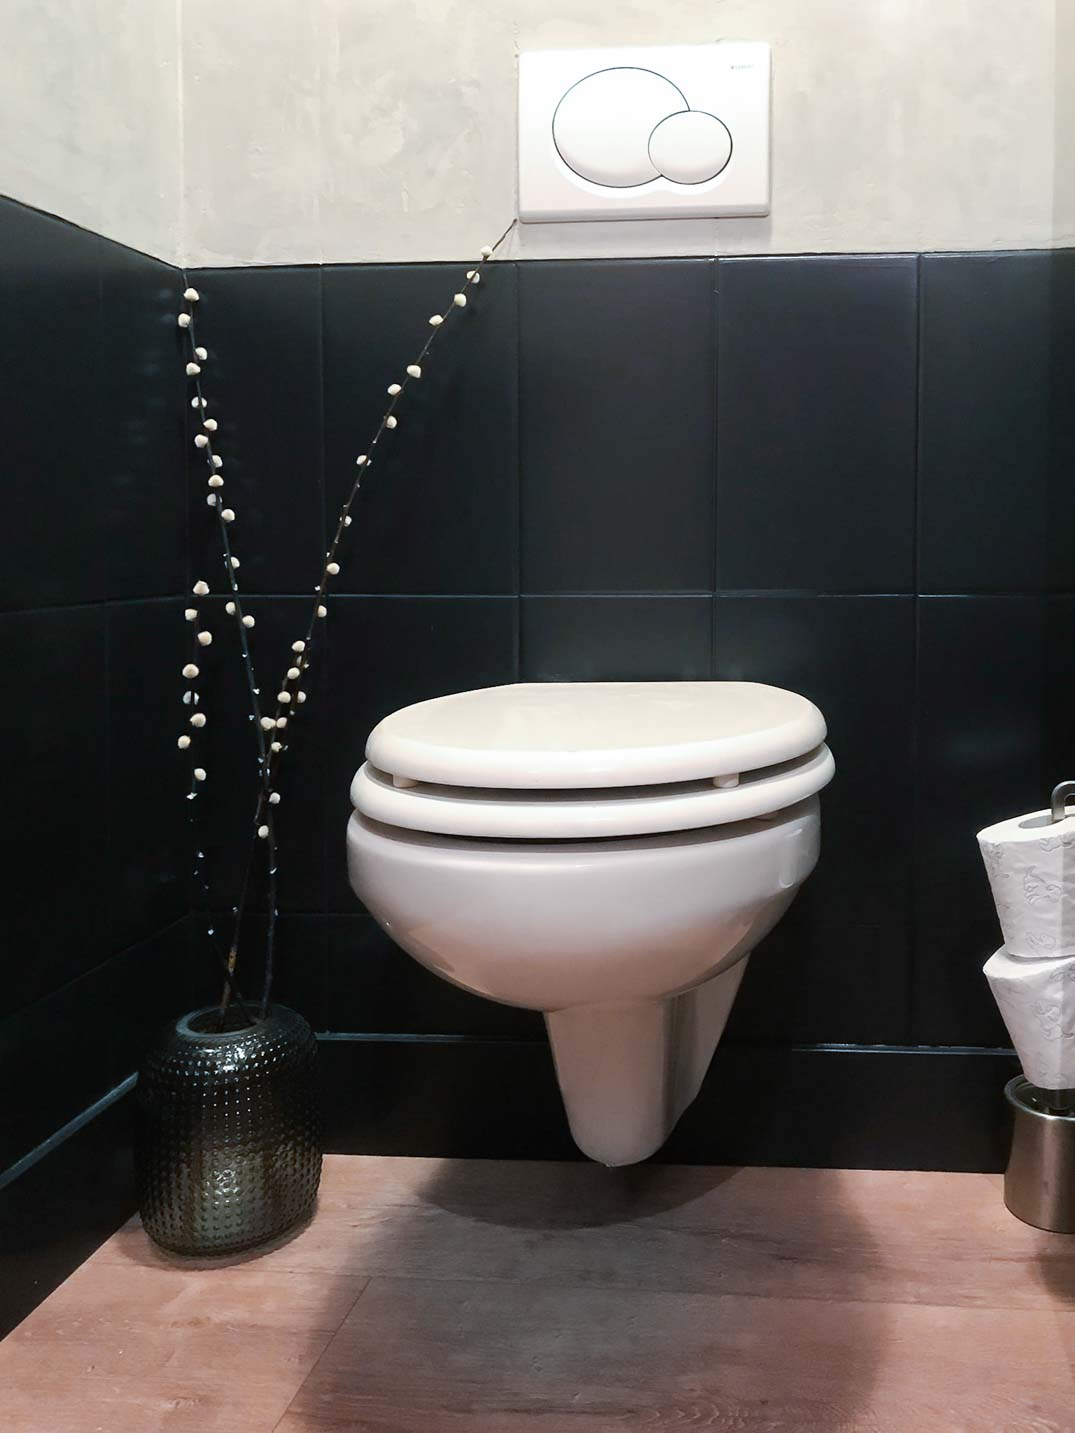 Toilet metamorfose met Marrakech Walls